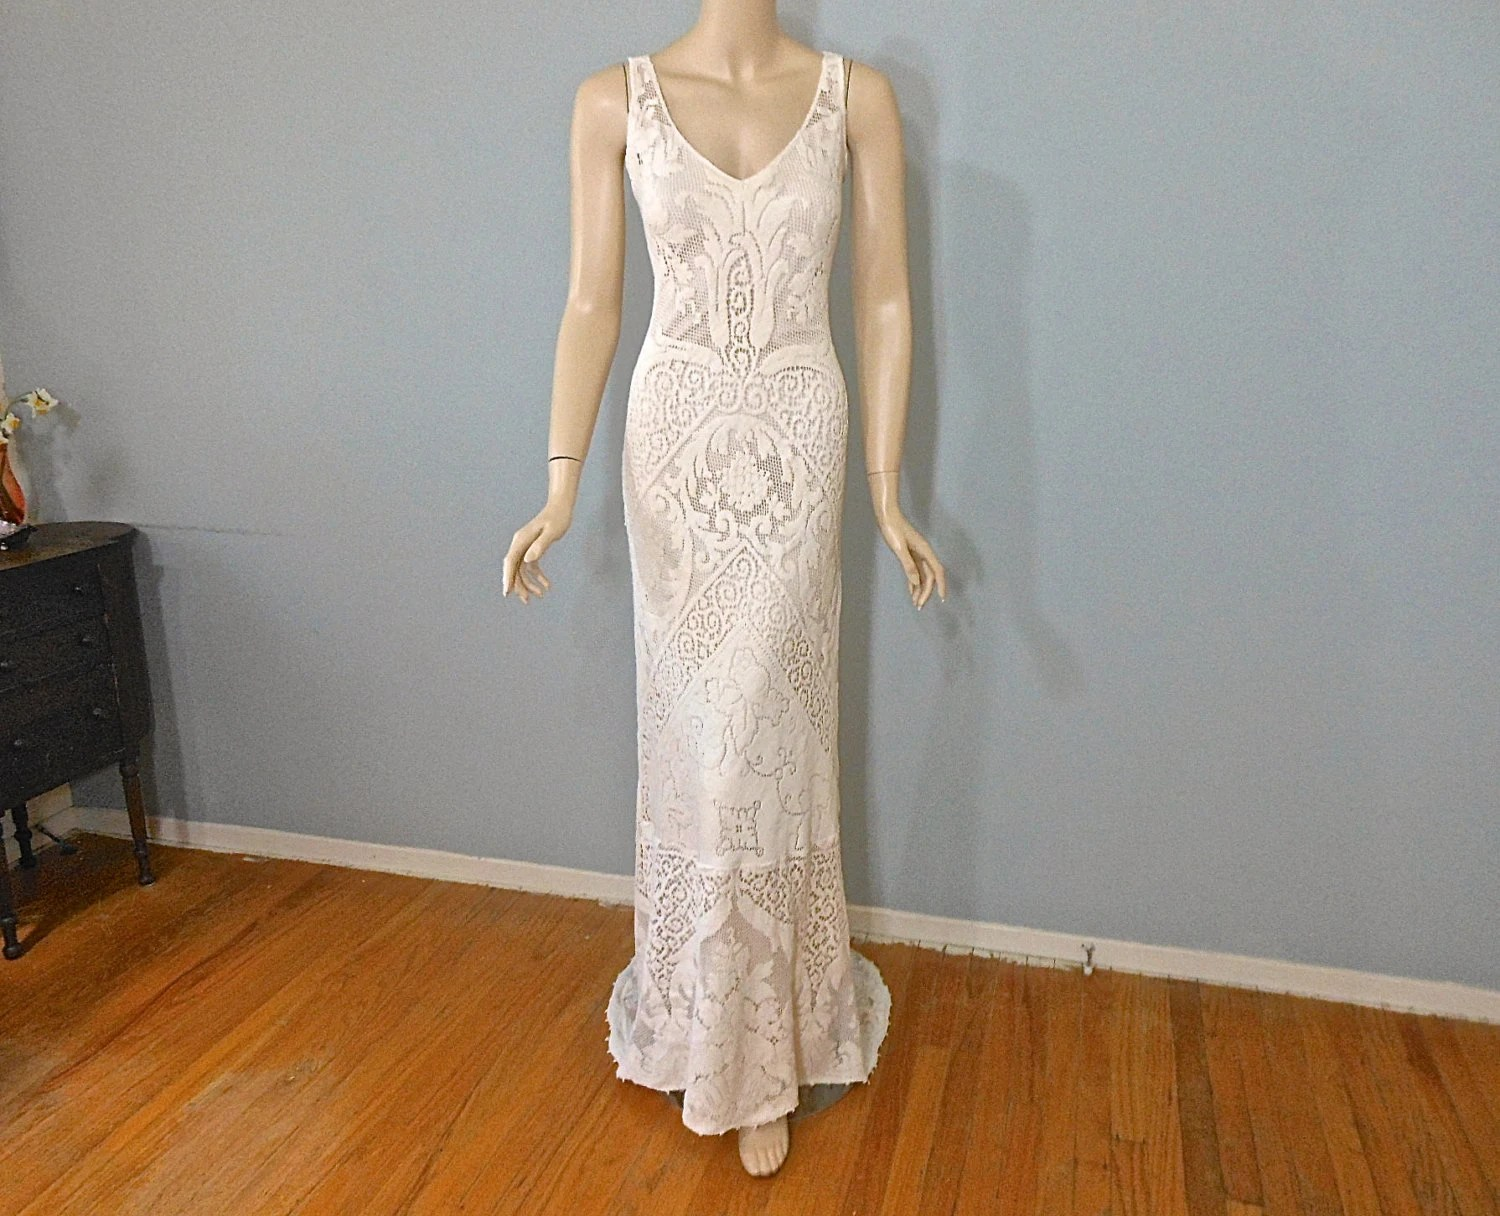 Simple Wedding Dress BOHEMIAN Wedding Dress LACE Wedding Dress